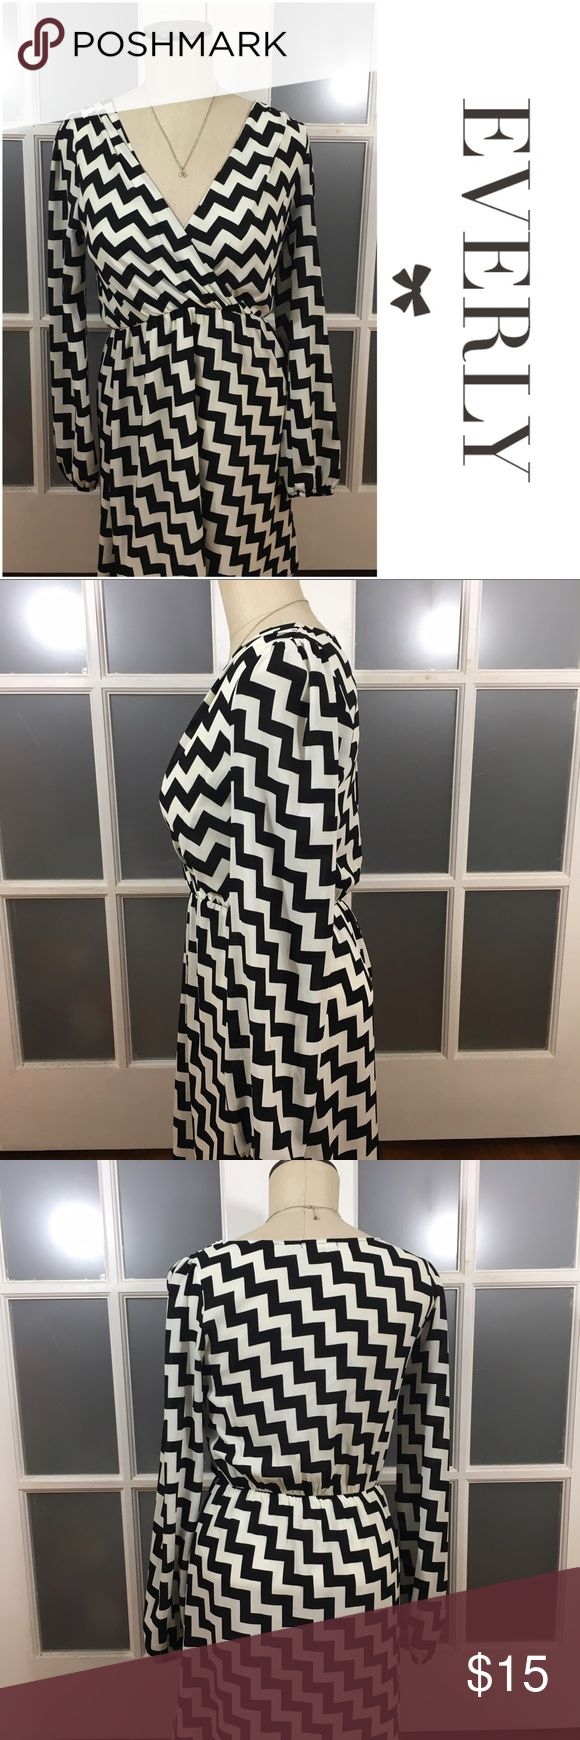 🎉30% OFF BDLS🎉 Everly chevron print dress Everly black and whirman chevron print dress. Lined. Vneck. Long sleeved, sleeves are semi sheer.   🔹Material: 100% polyester   🔹Colors may vary slightly from pictures. 🔹30% off bundles of 2 or more 🔹Accept reasonable offers 🔹No Trades Everly Dresses Long Sleeve